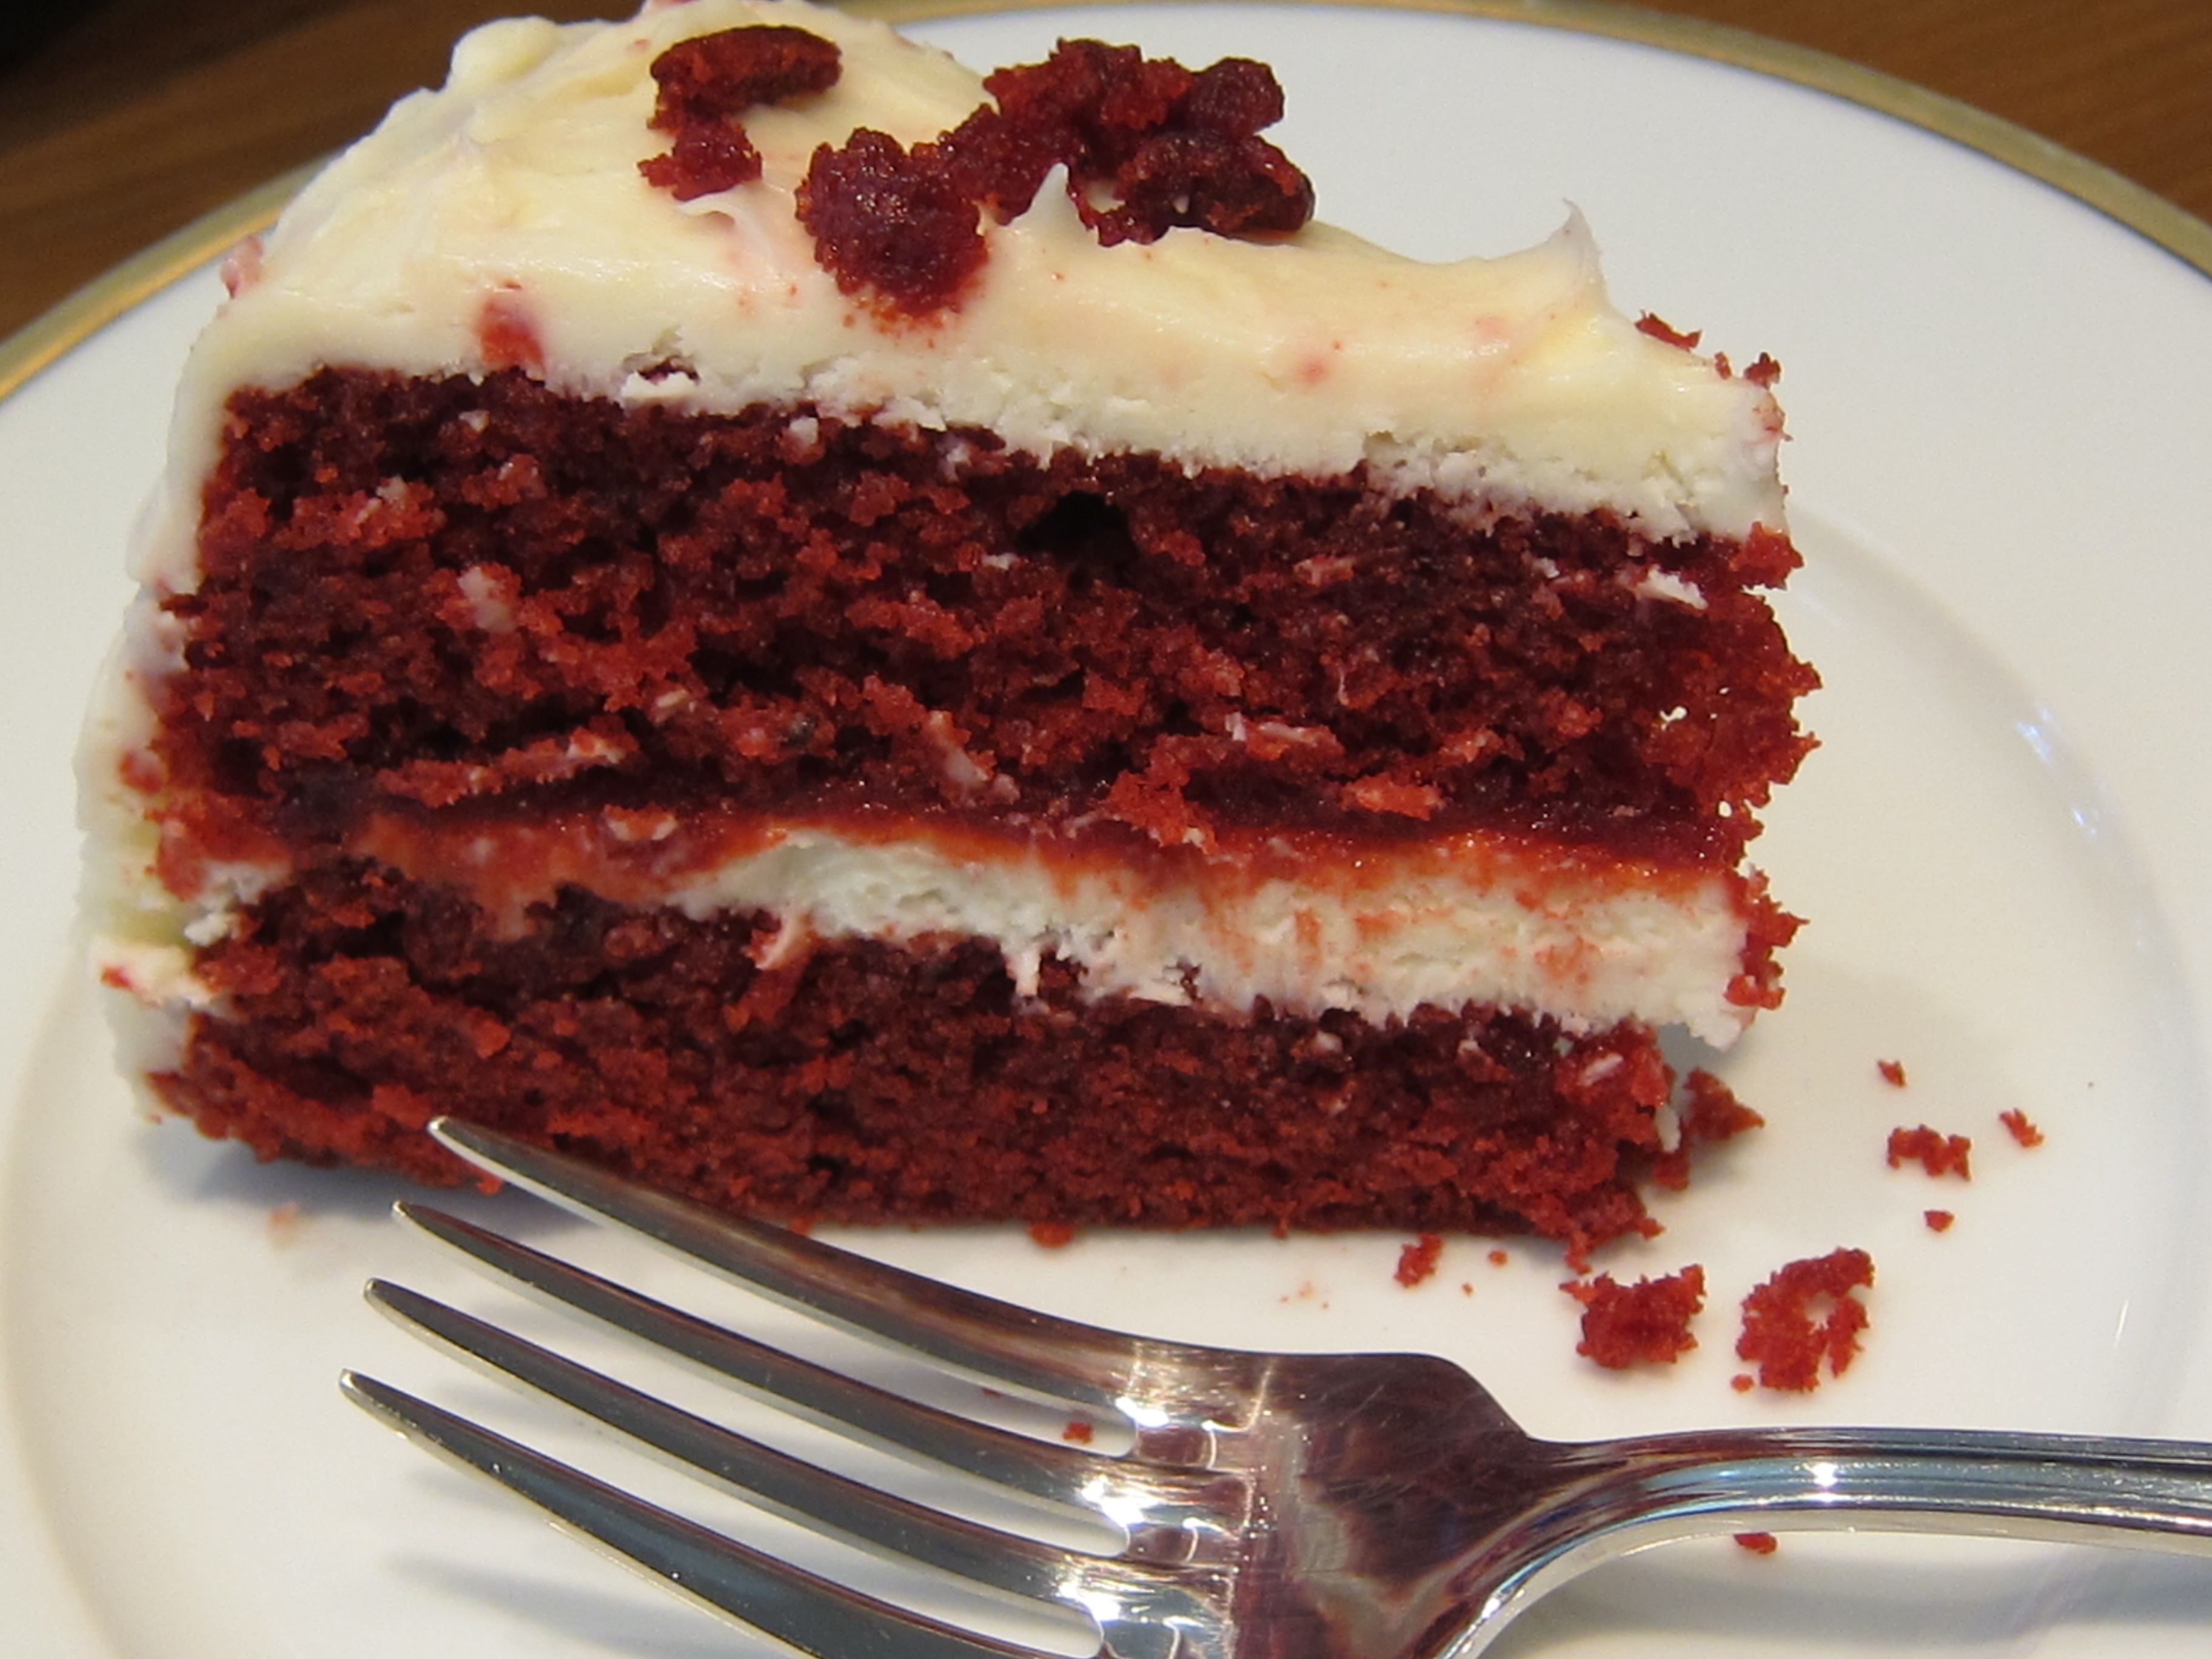 Red Velvet cake with Cream Cheese Frosting | SeriouslySimple